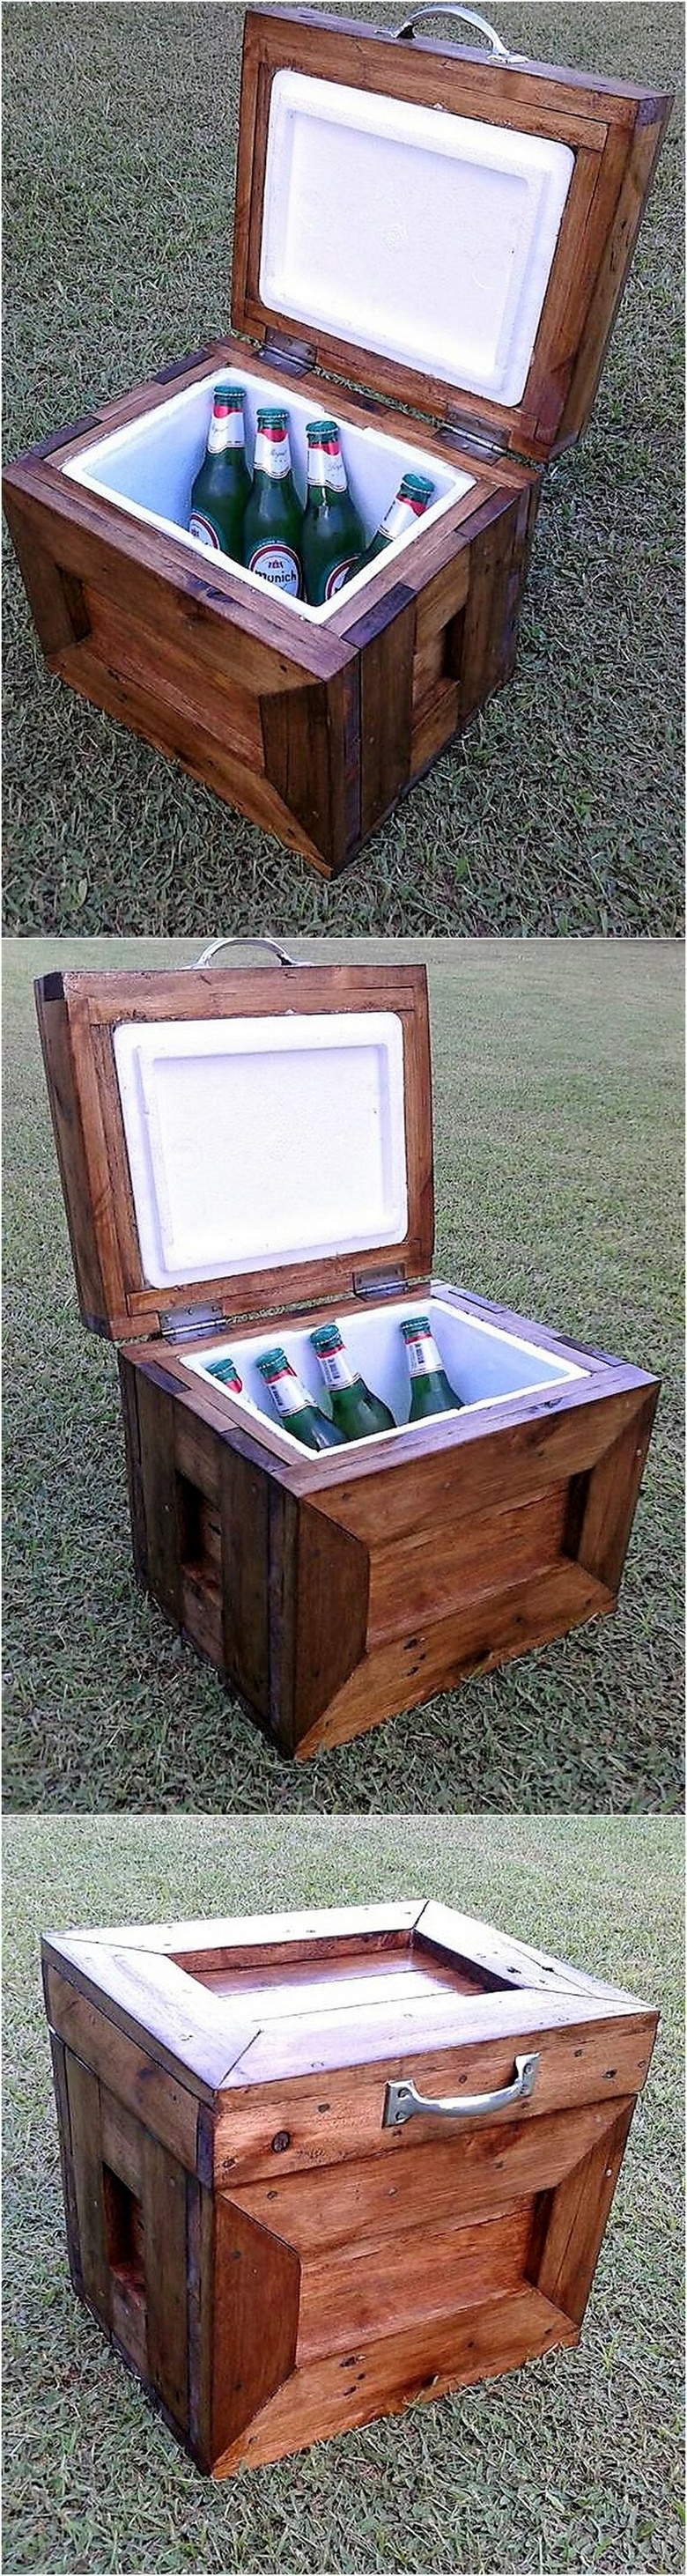 reclaimed pallets cooler idea